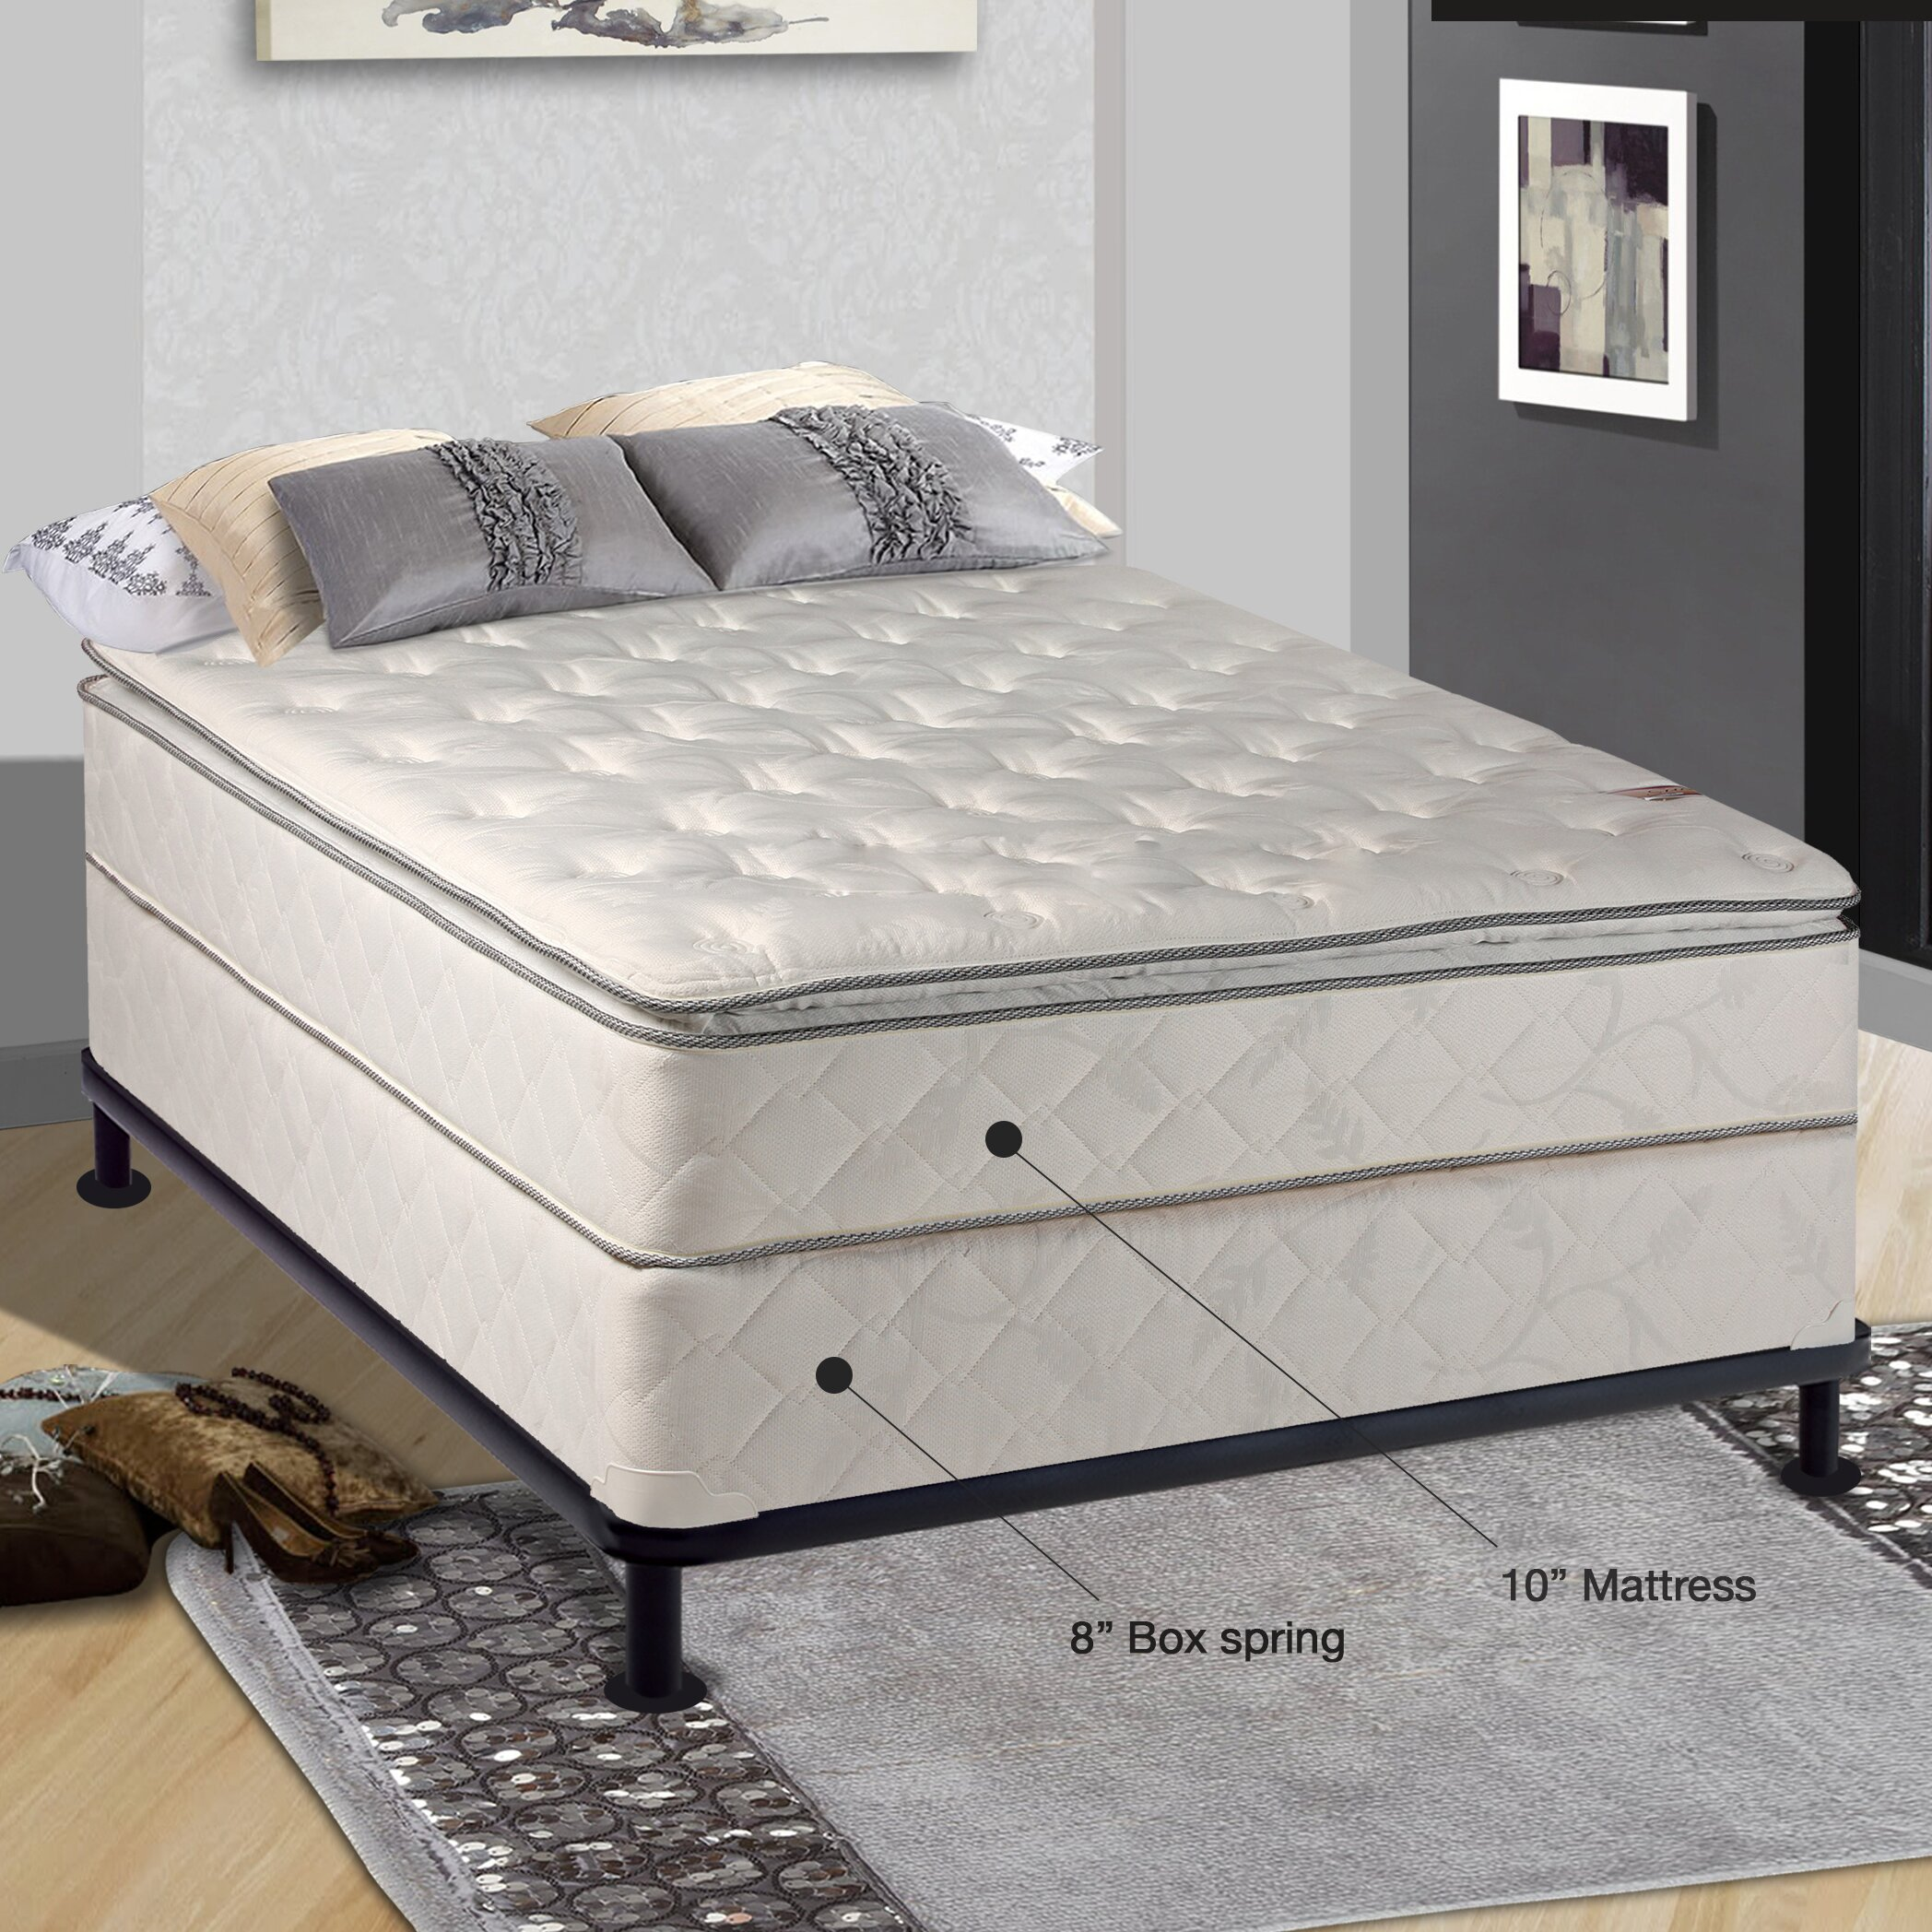 spinal solution orthopedic 10 firm mattress with box spring reviews. Black Bedroom Furniture Sets. Home Design Ideas